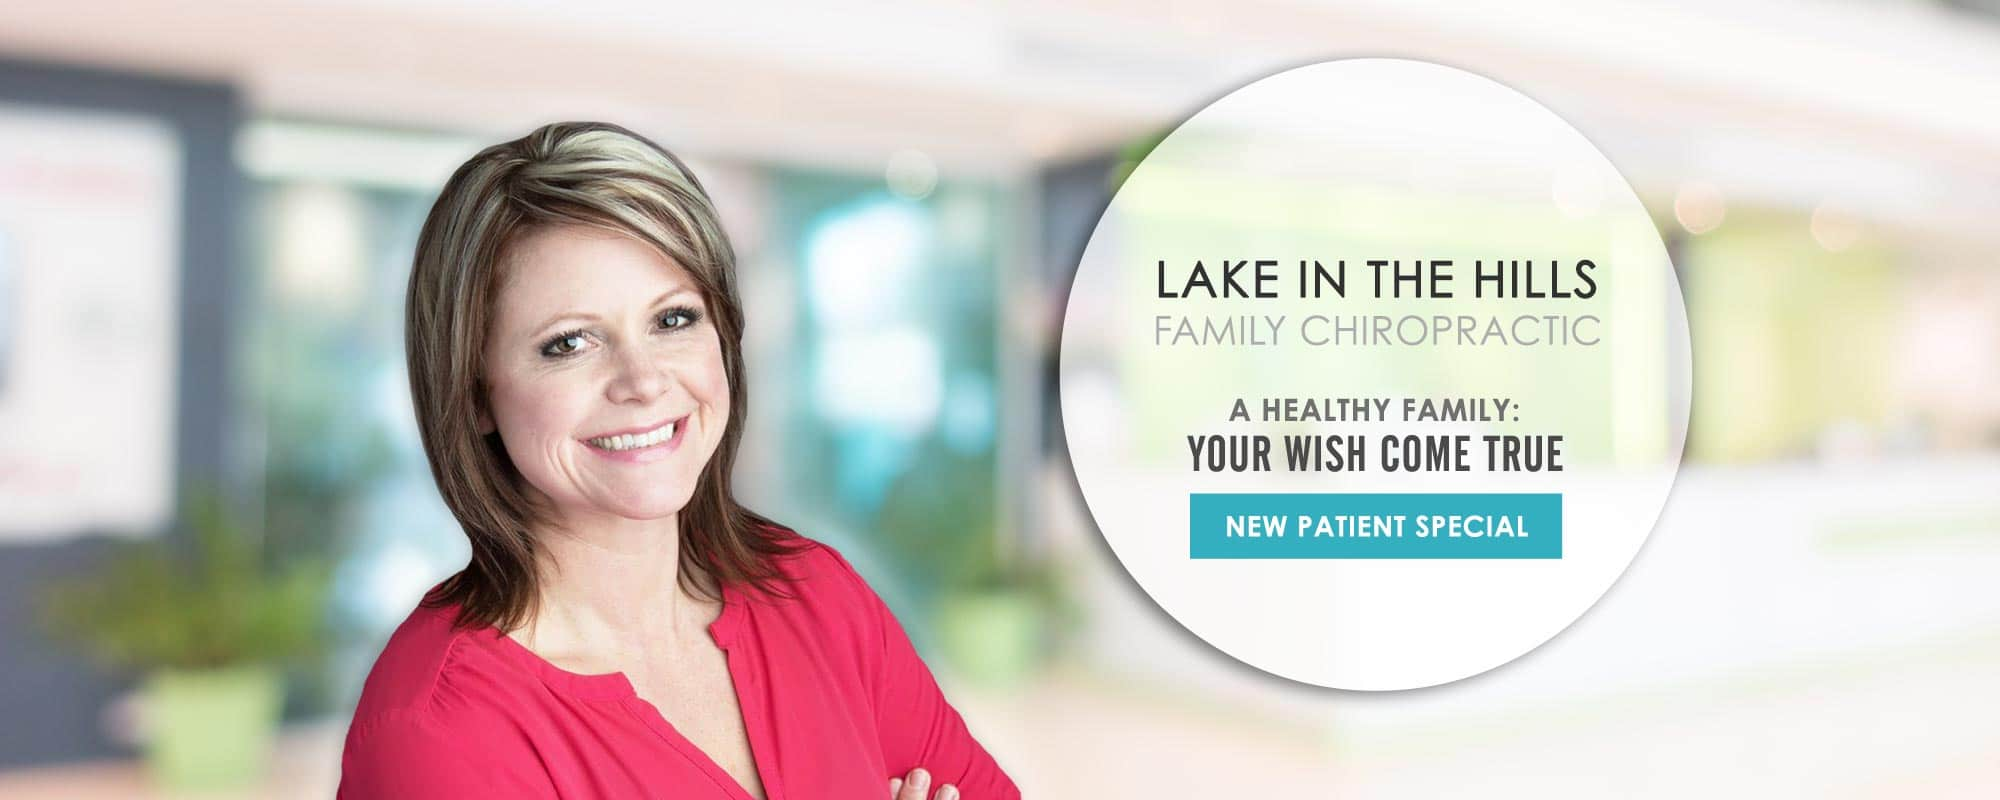 Chiropractor Lake in the Hills IL Dr. Elizabeth Eyles